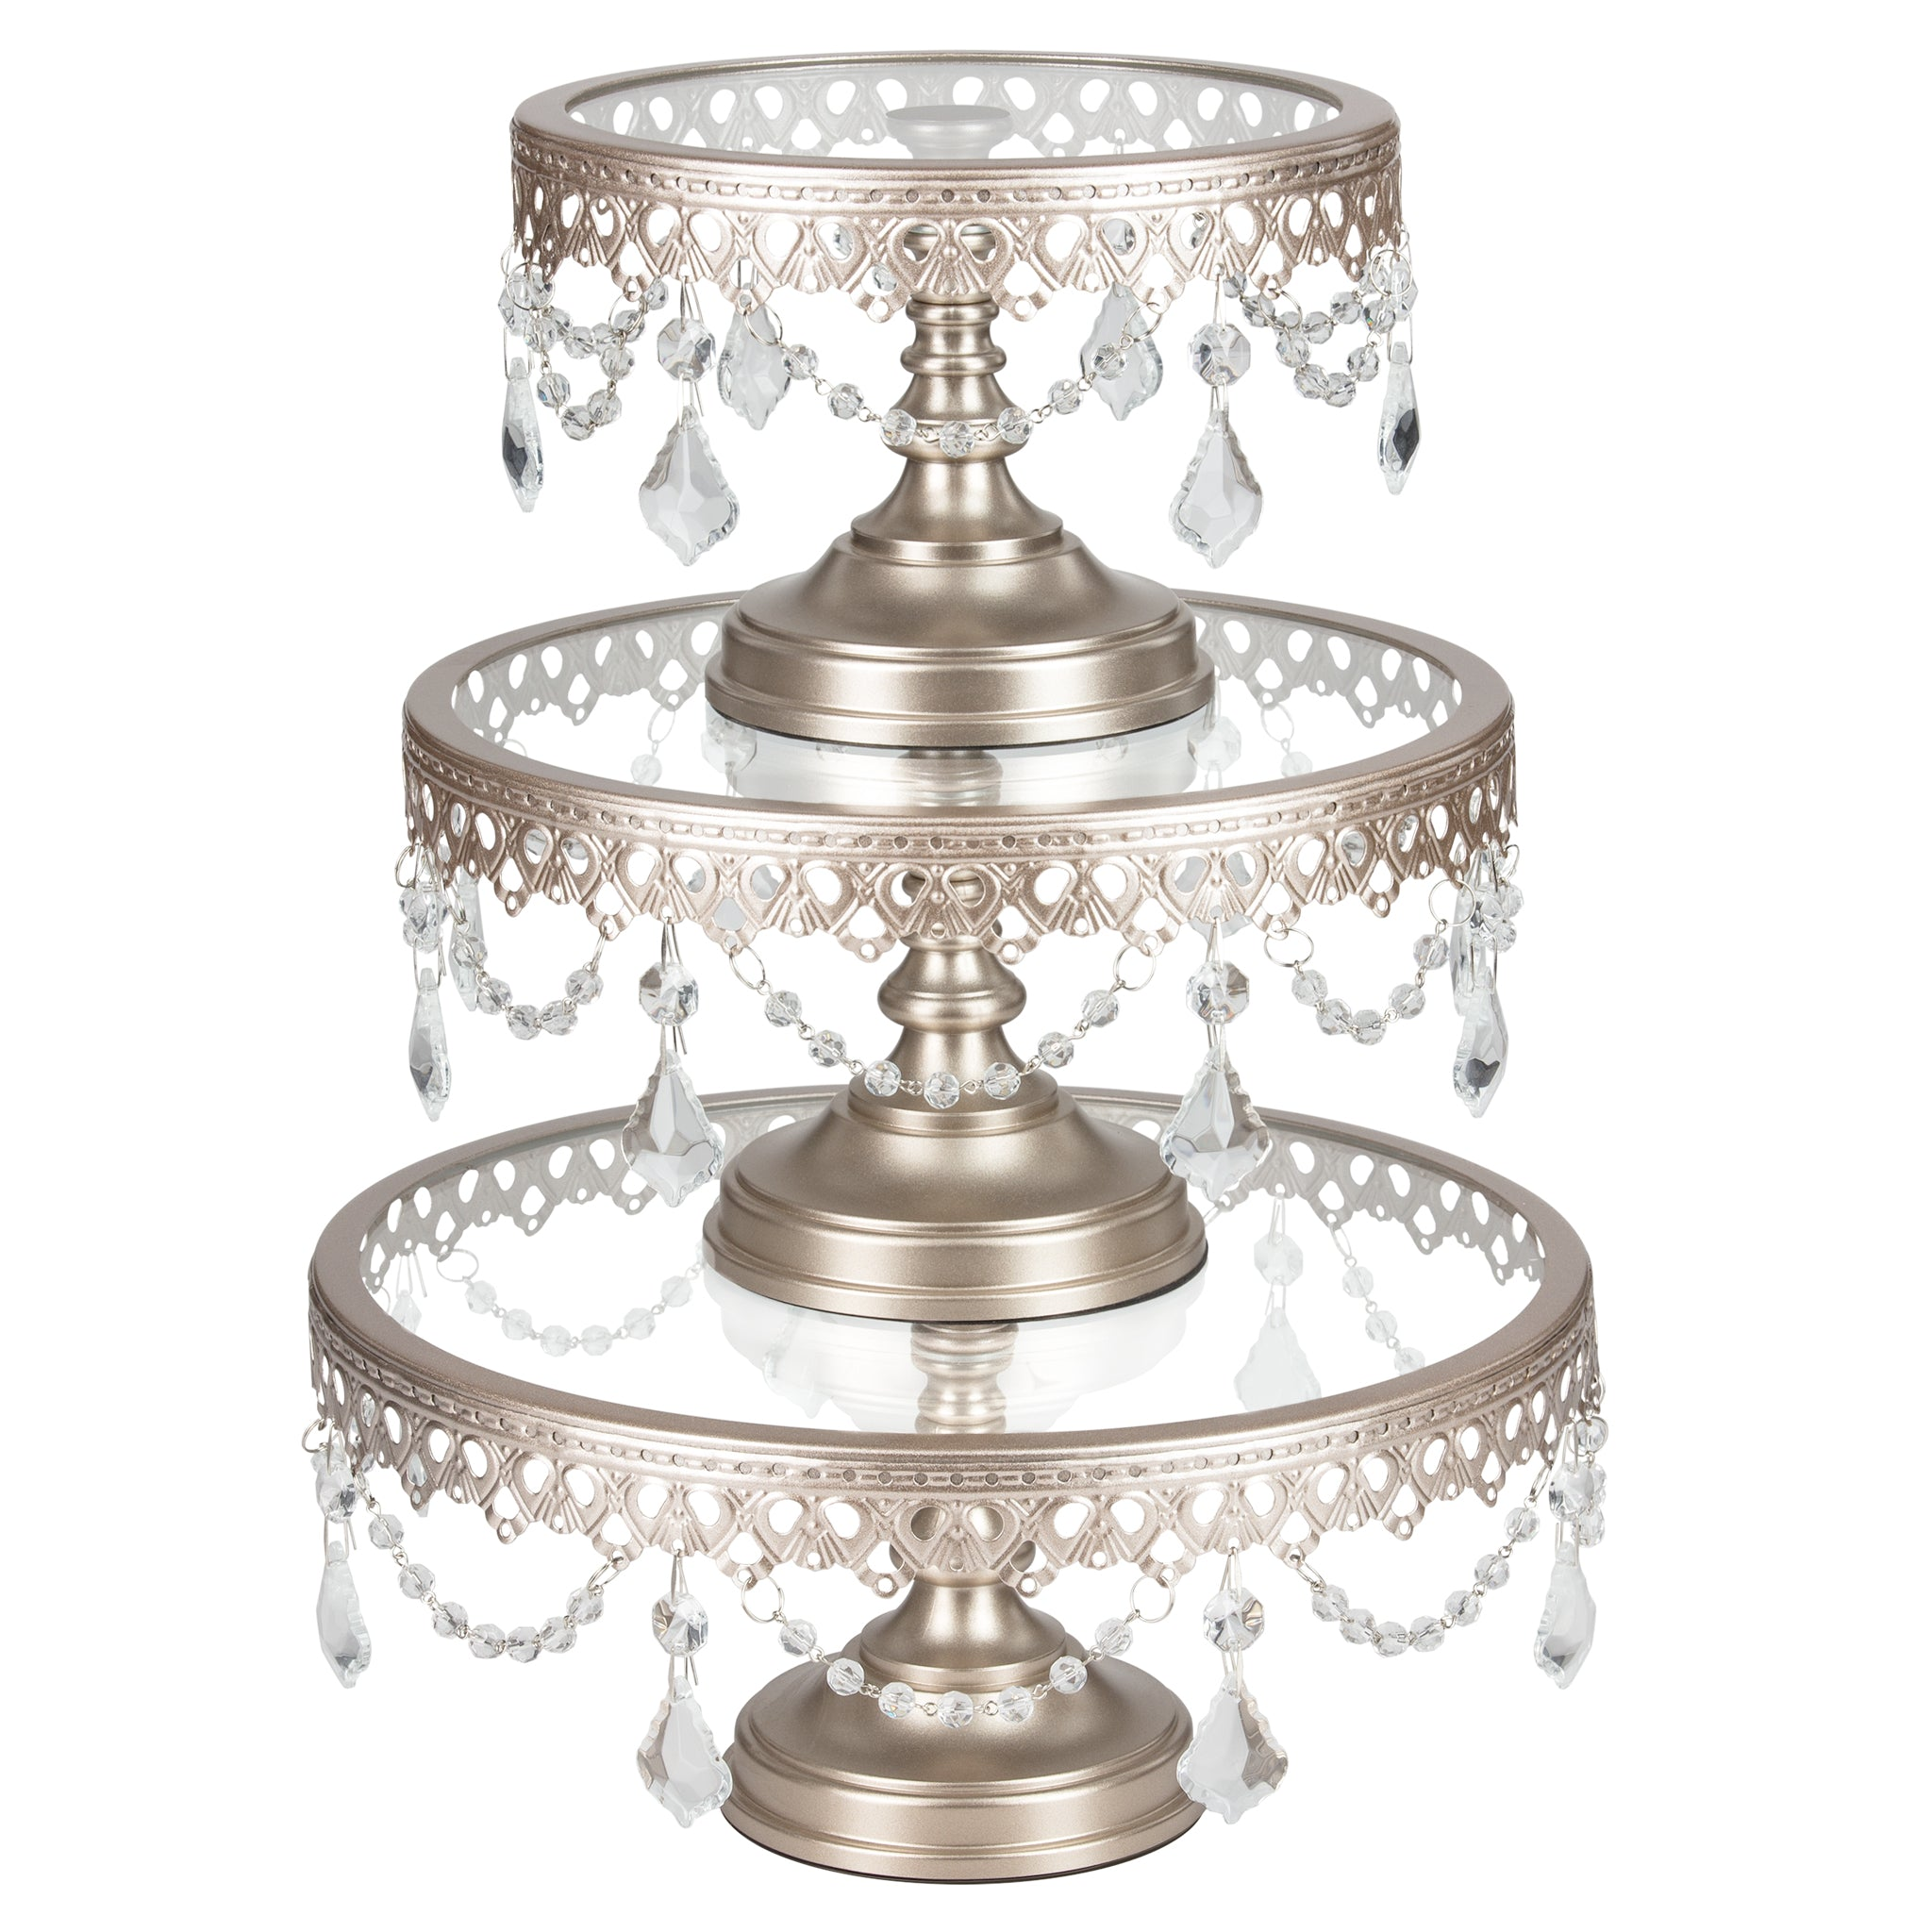 Amalfi Decor 3-Piece Glass Top Crystal Cake Stand Set (Champagne) | H | Stainless Steel Frame